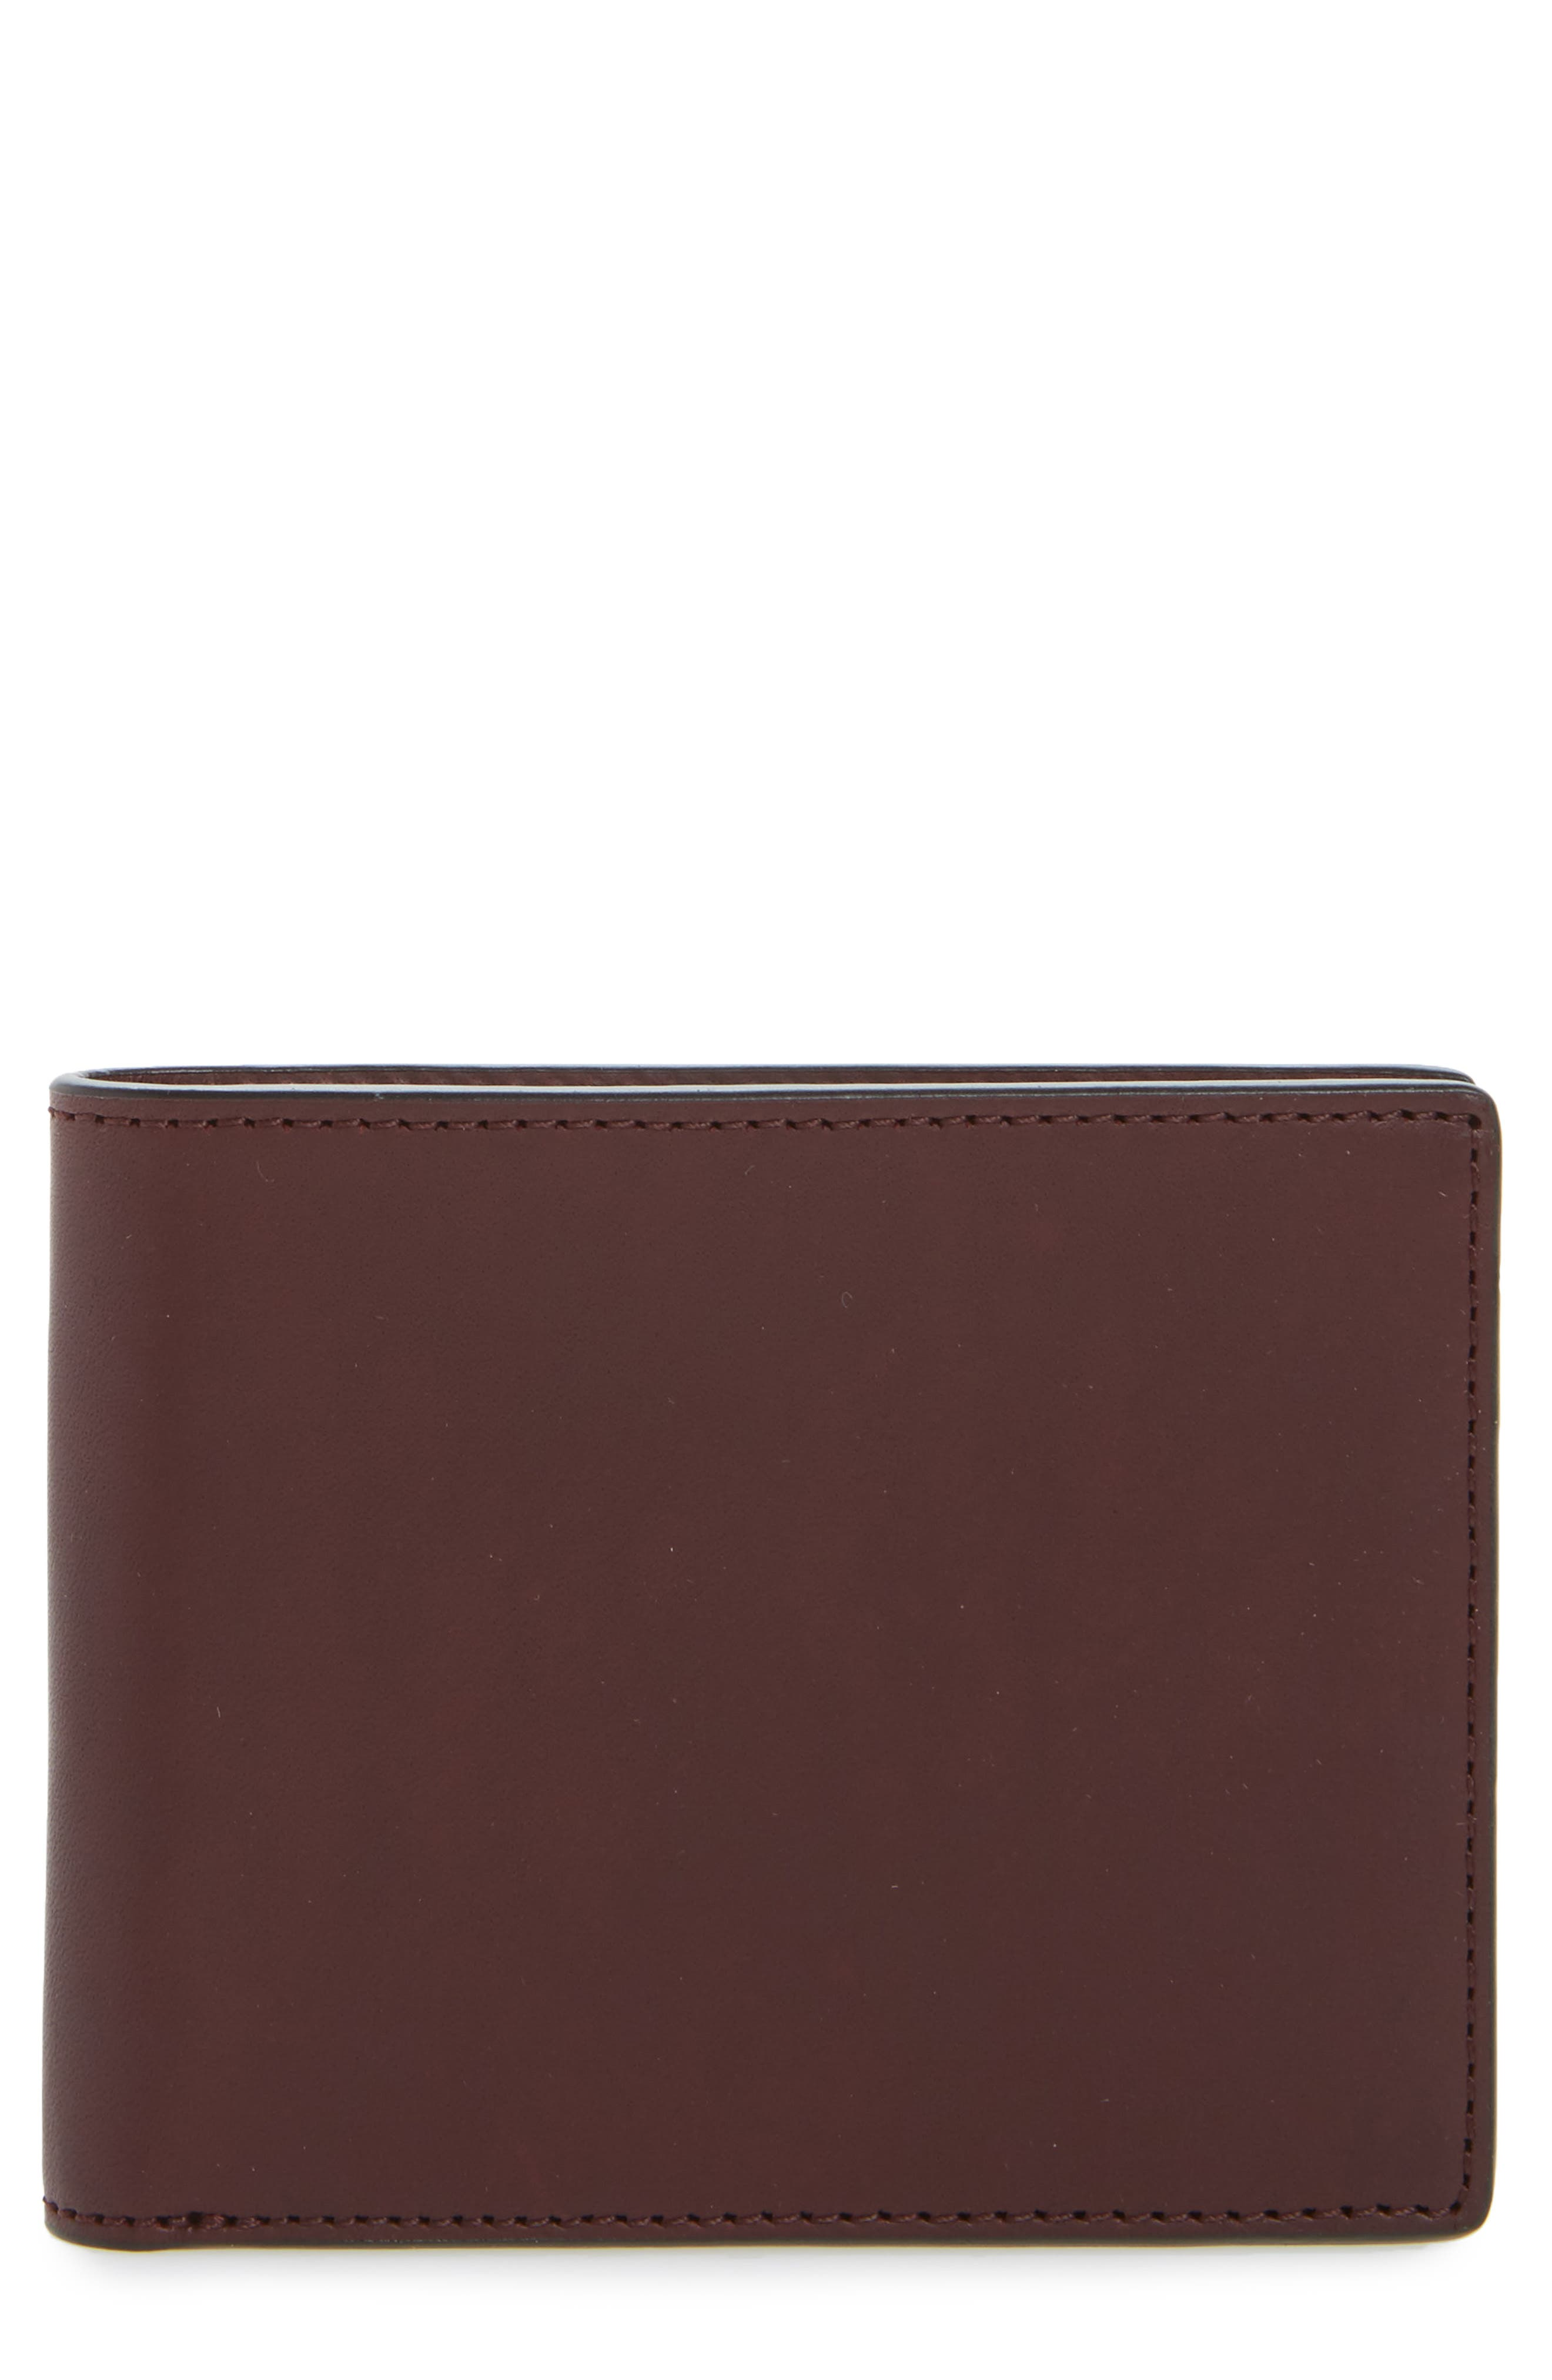 Hampshire Bifold Leather Wallet,                         Main,                         color, Ox Blood